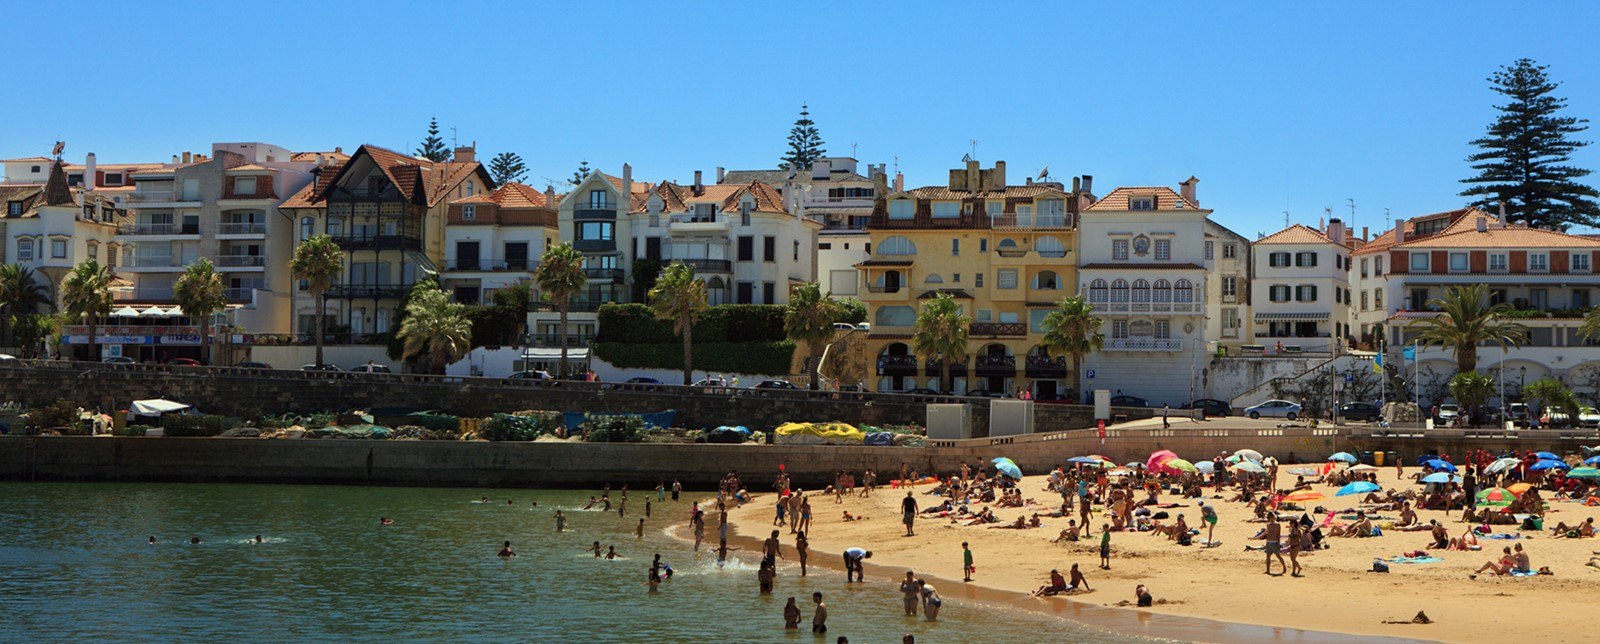 People at the beach in Cascais